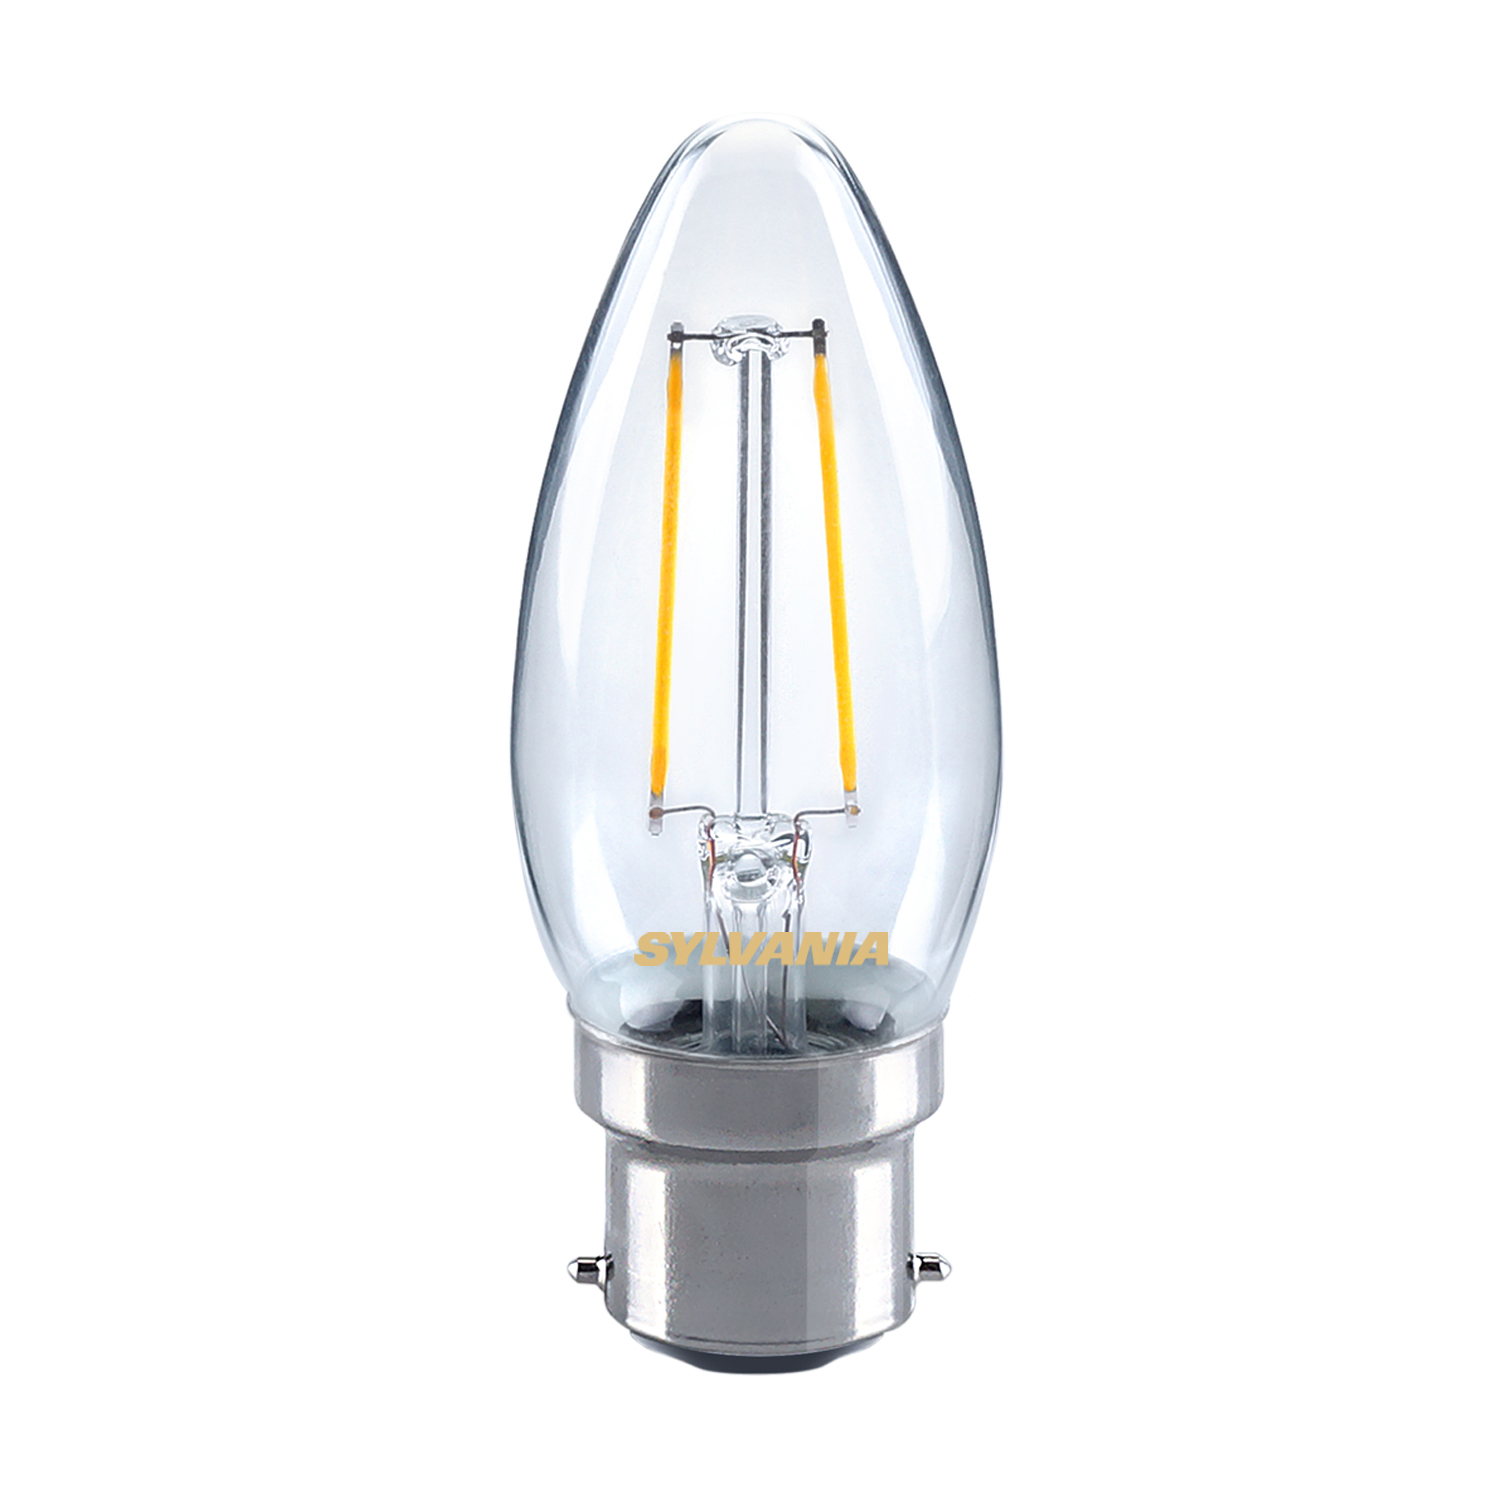 Sylvania 2 5w led traditional candle light bulb b22 bc warm white 2700k liminaires Sylvania bulbs